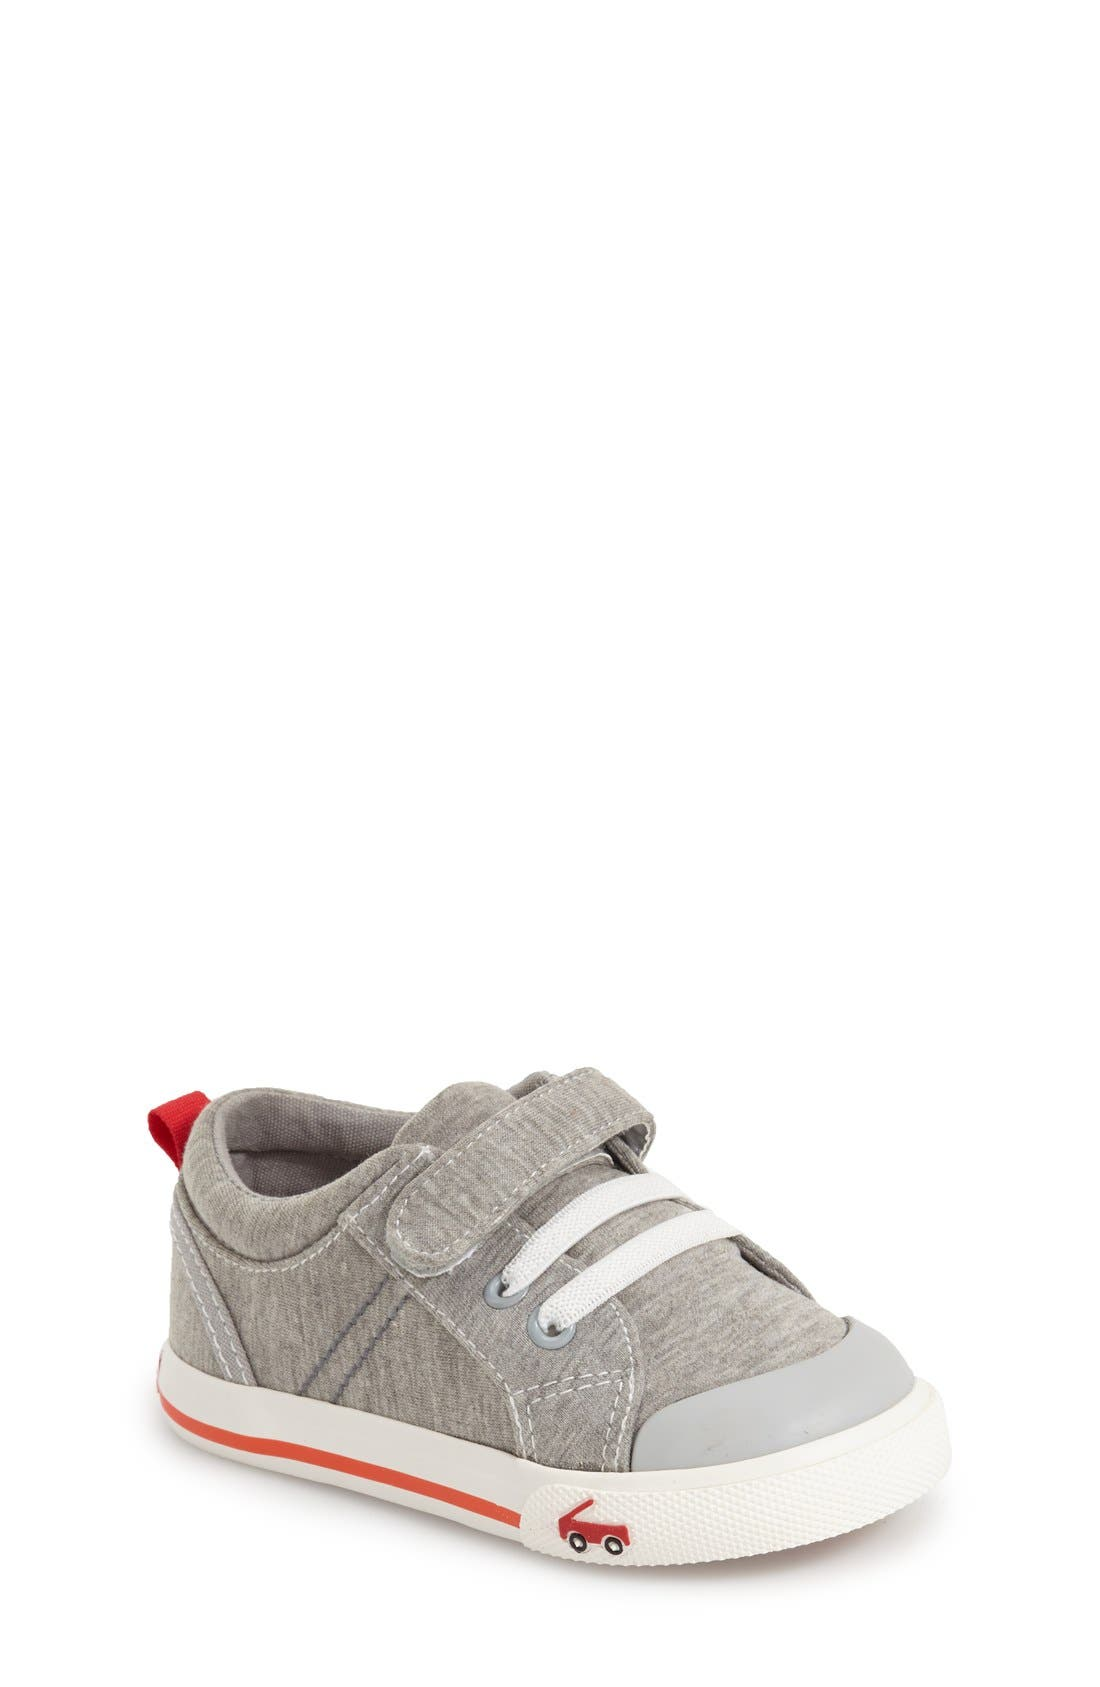 See Kai Run 'Tanner' Sneaker (Baby, Walker & Toddler)